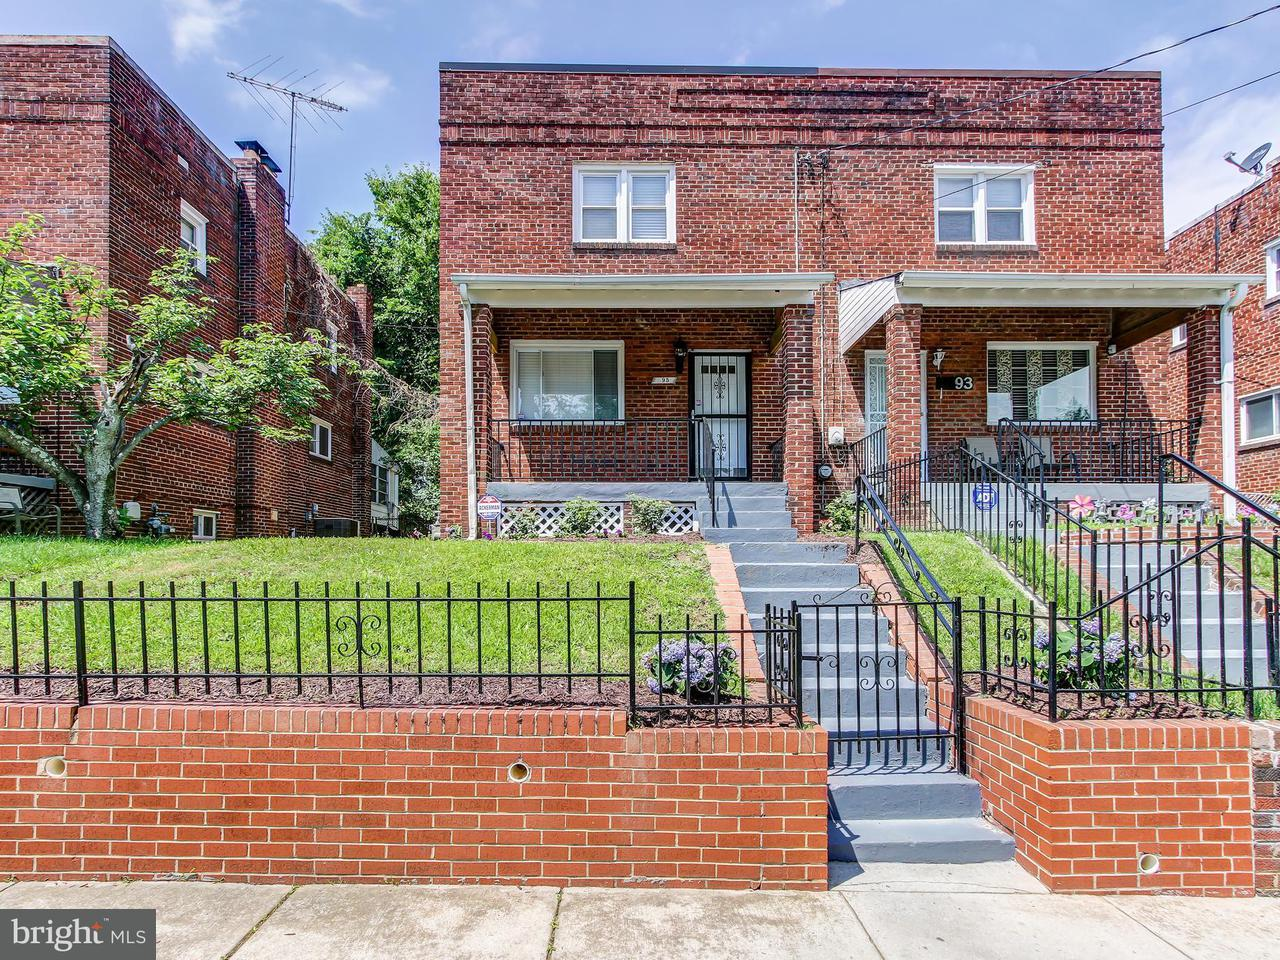 Single Family for Sale at 95 54th St SE Washington, District Of Columbia 20019 United States